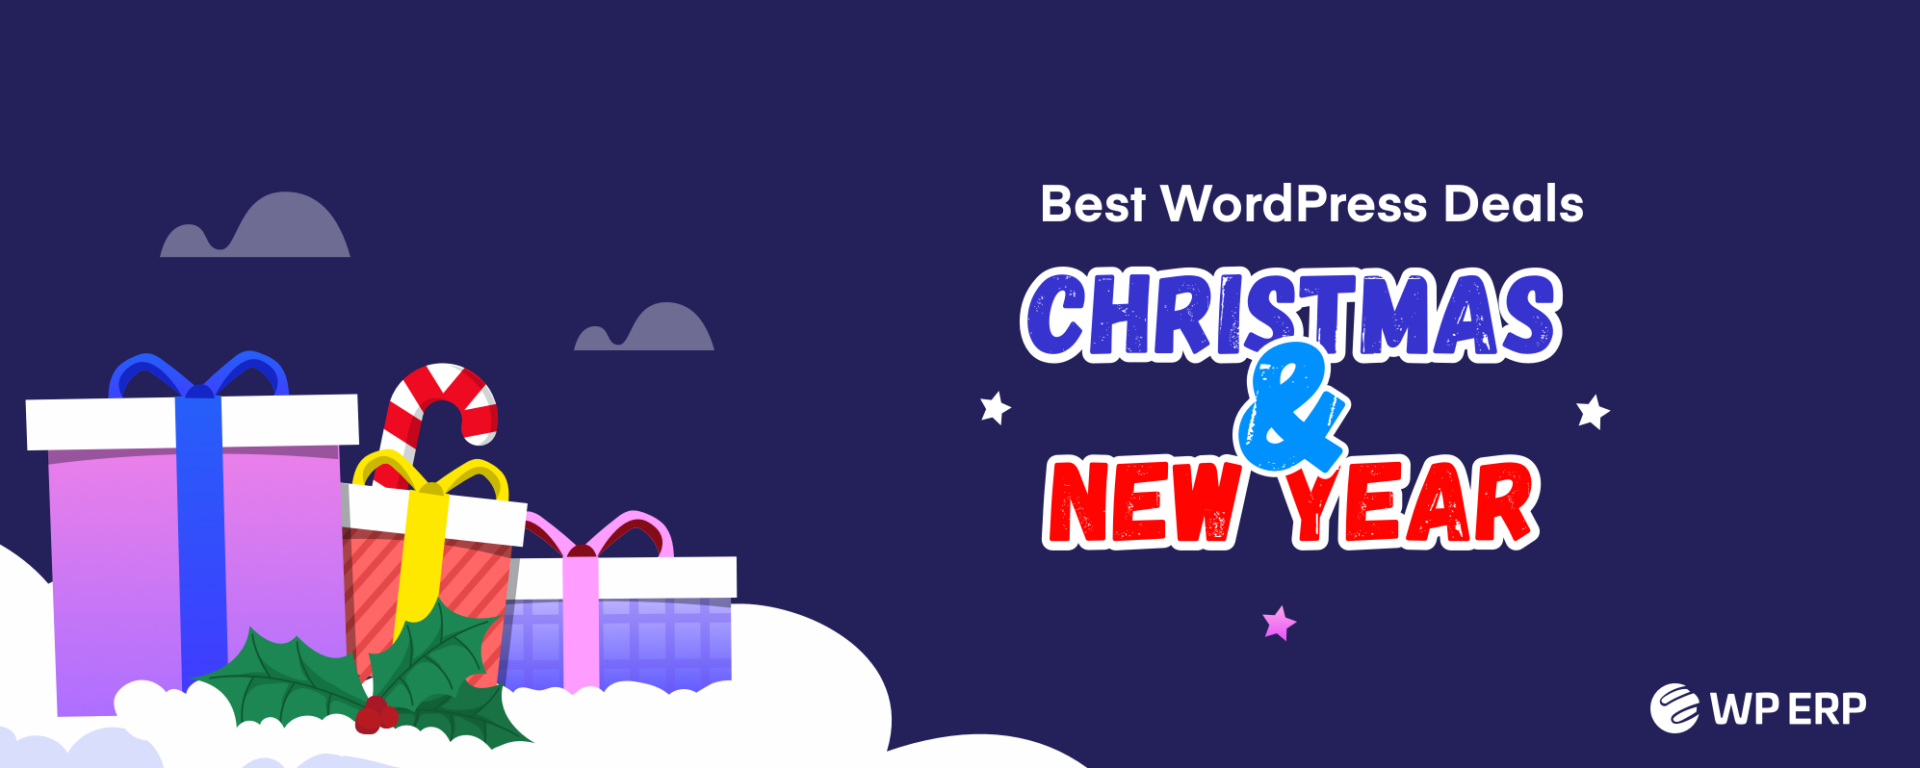 Best WordPress christmas deals